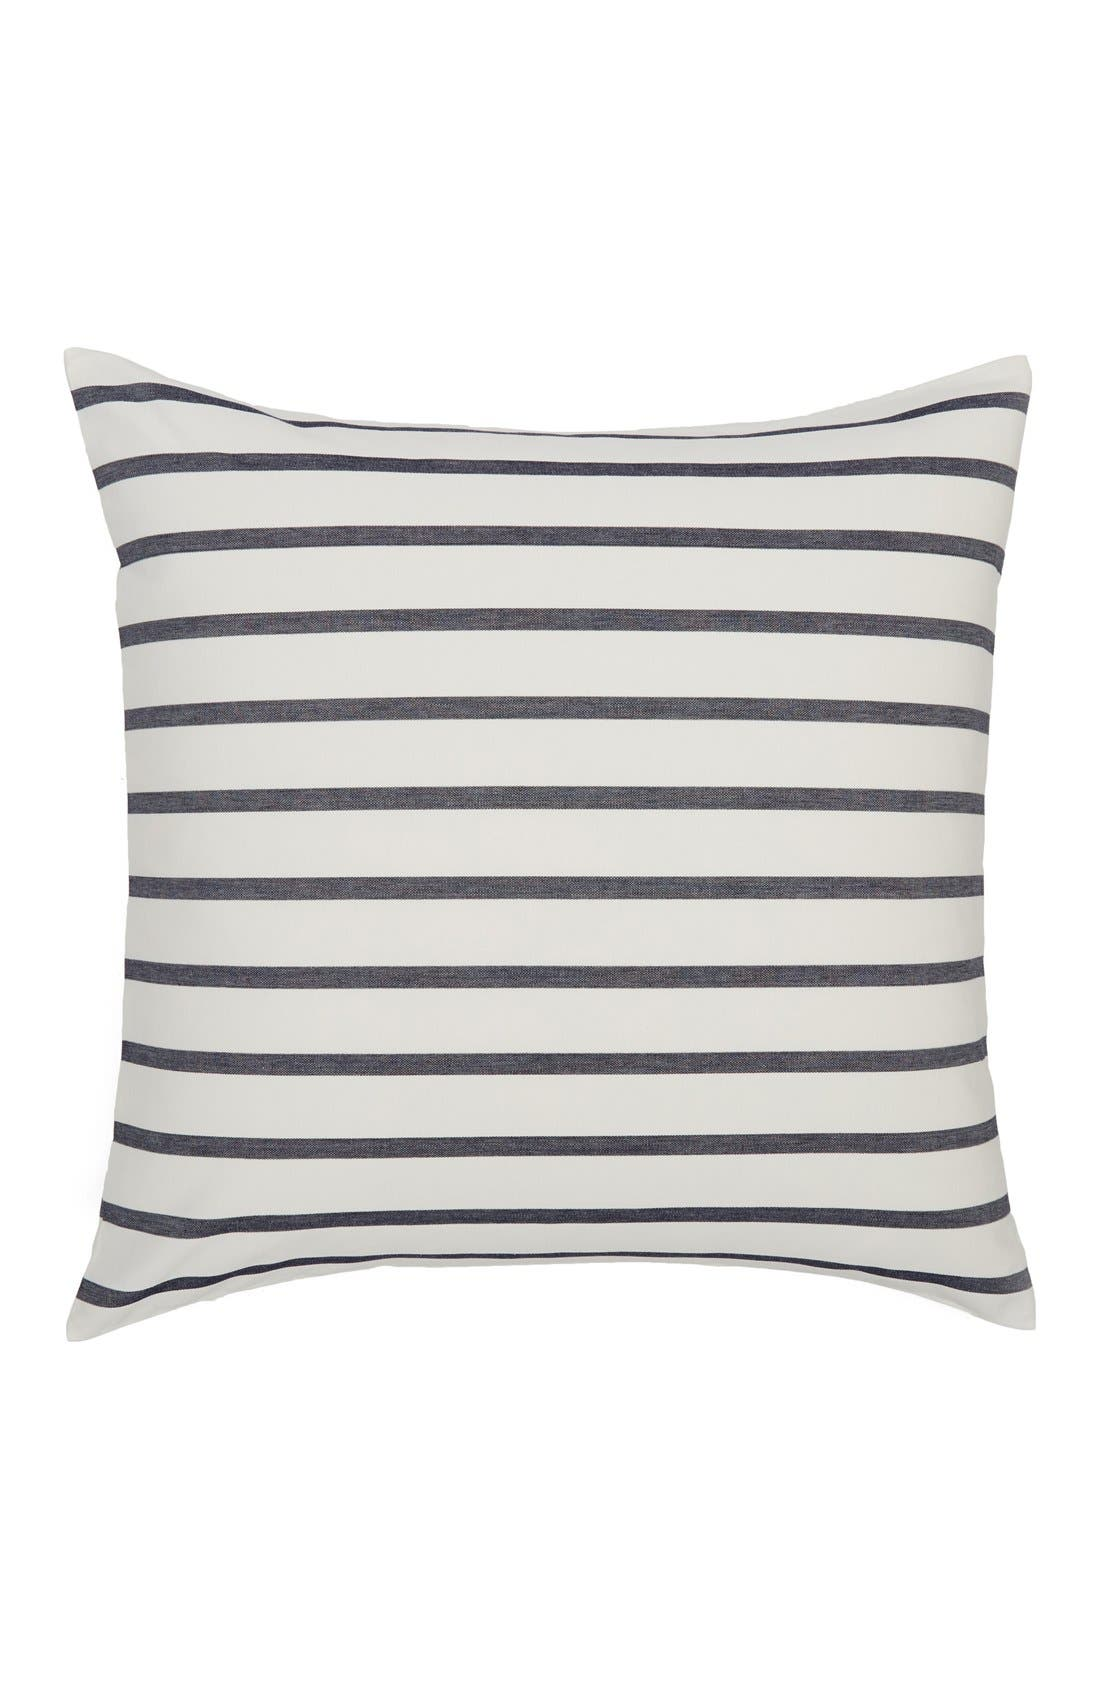 Main Image - kate spade new york 'harbour stripe' euro sham